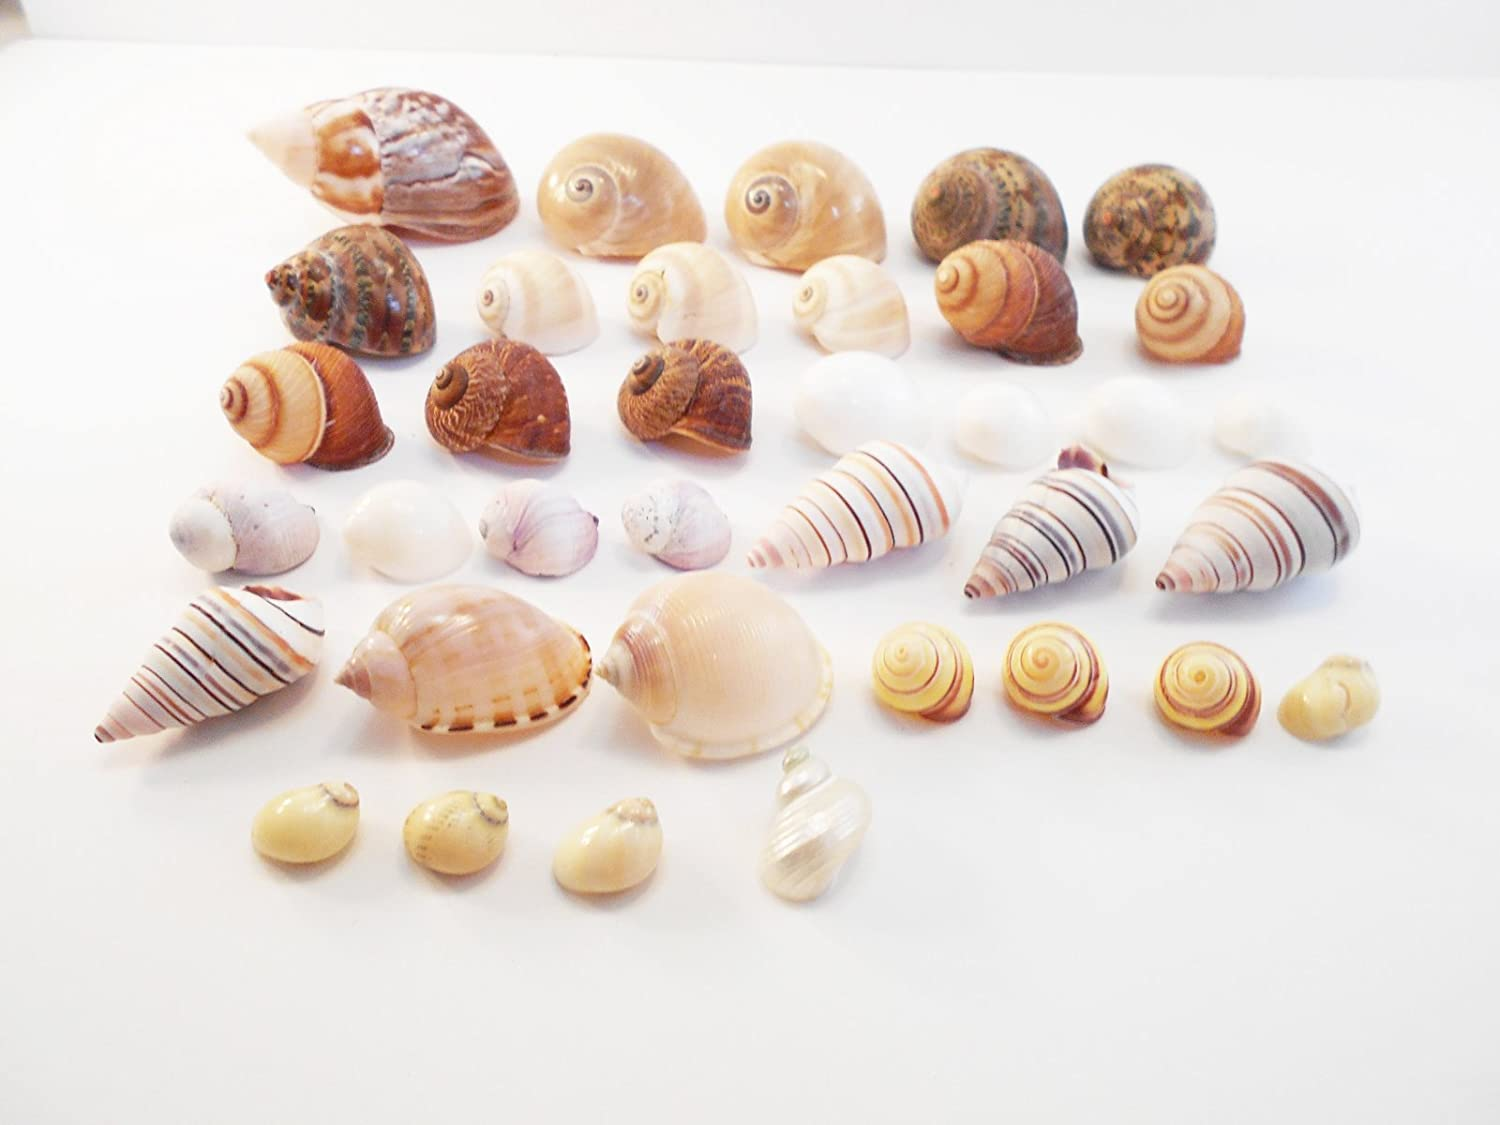 FSG - Select 35 Hermit Crab Shells Assorted Changing Seashells SMALL 1/2-2 Size (opening size 1/4 - 1) Beautiful Florida Shells and Gifts